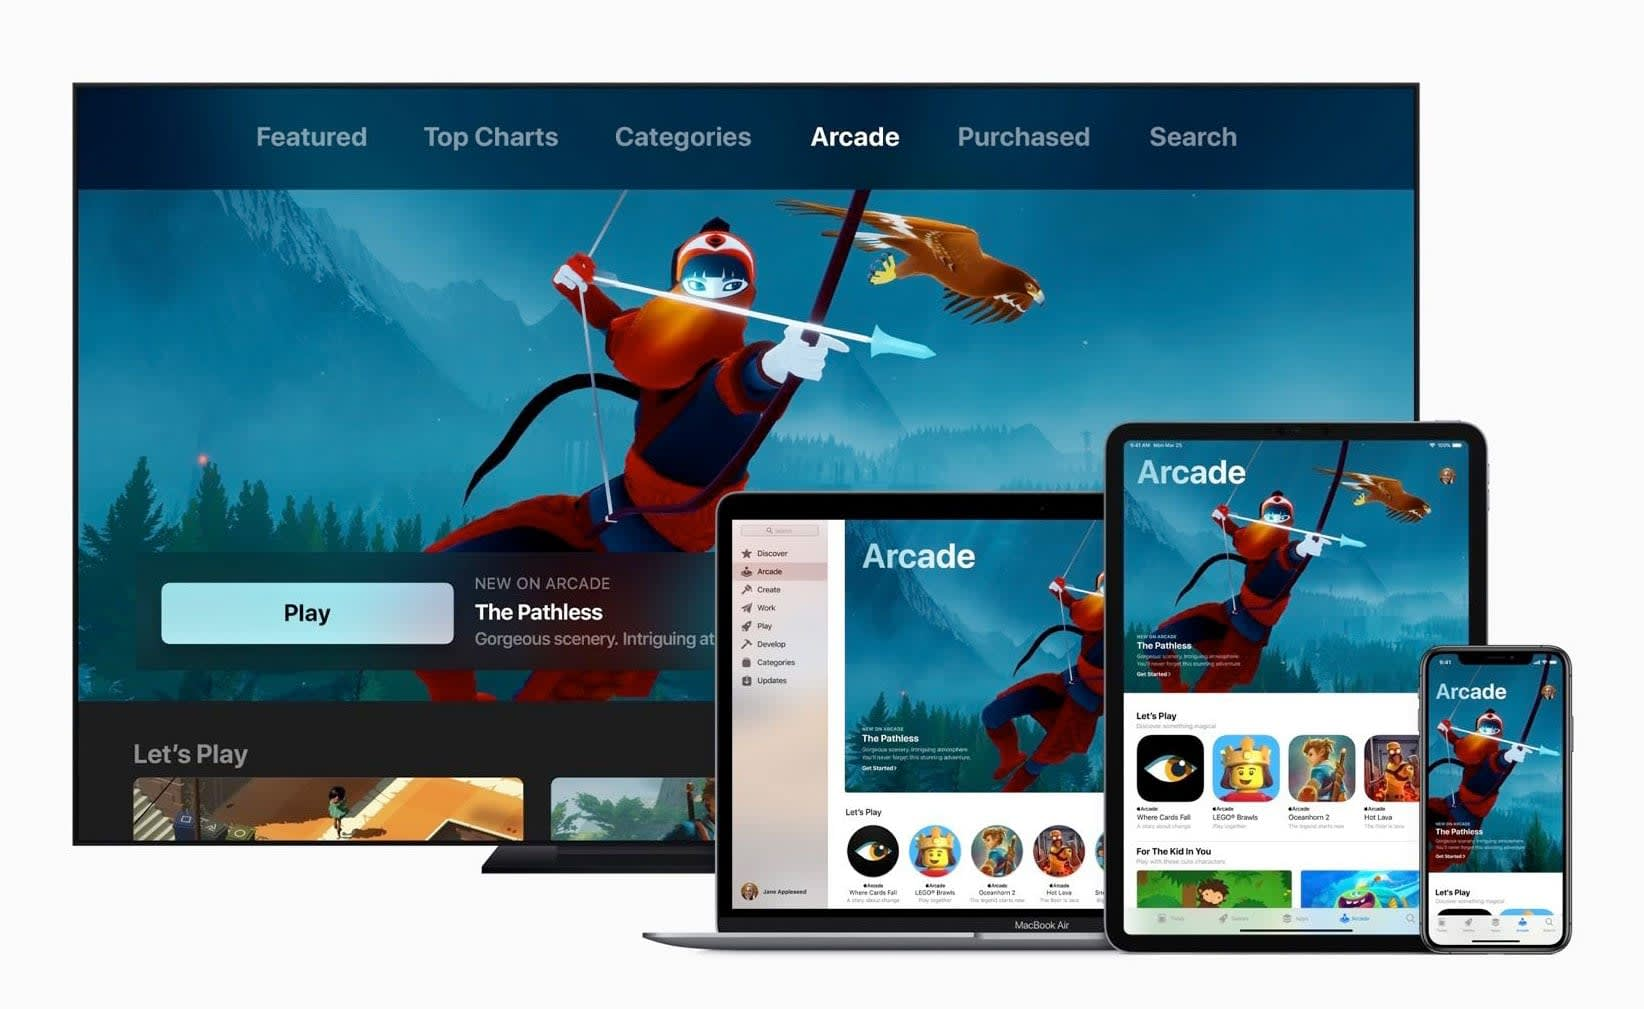 Apple Arcade is a game subscription service for iOS, Mac and Apple TV